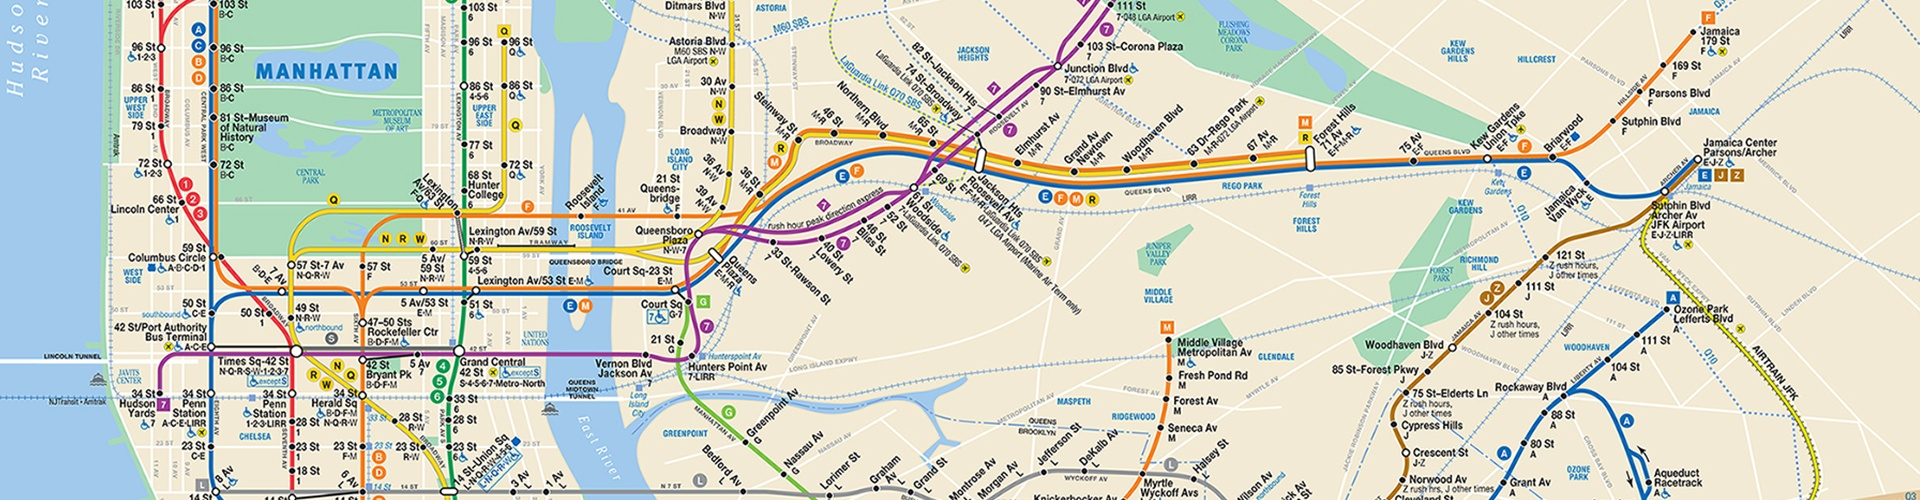 The 6 Transit Apps Every New Yorker Should Have